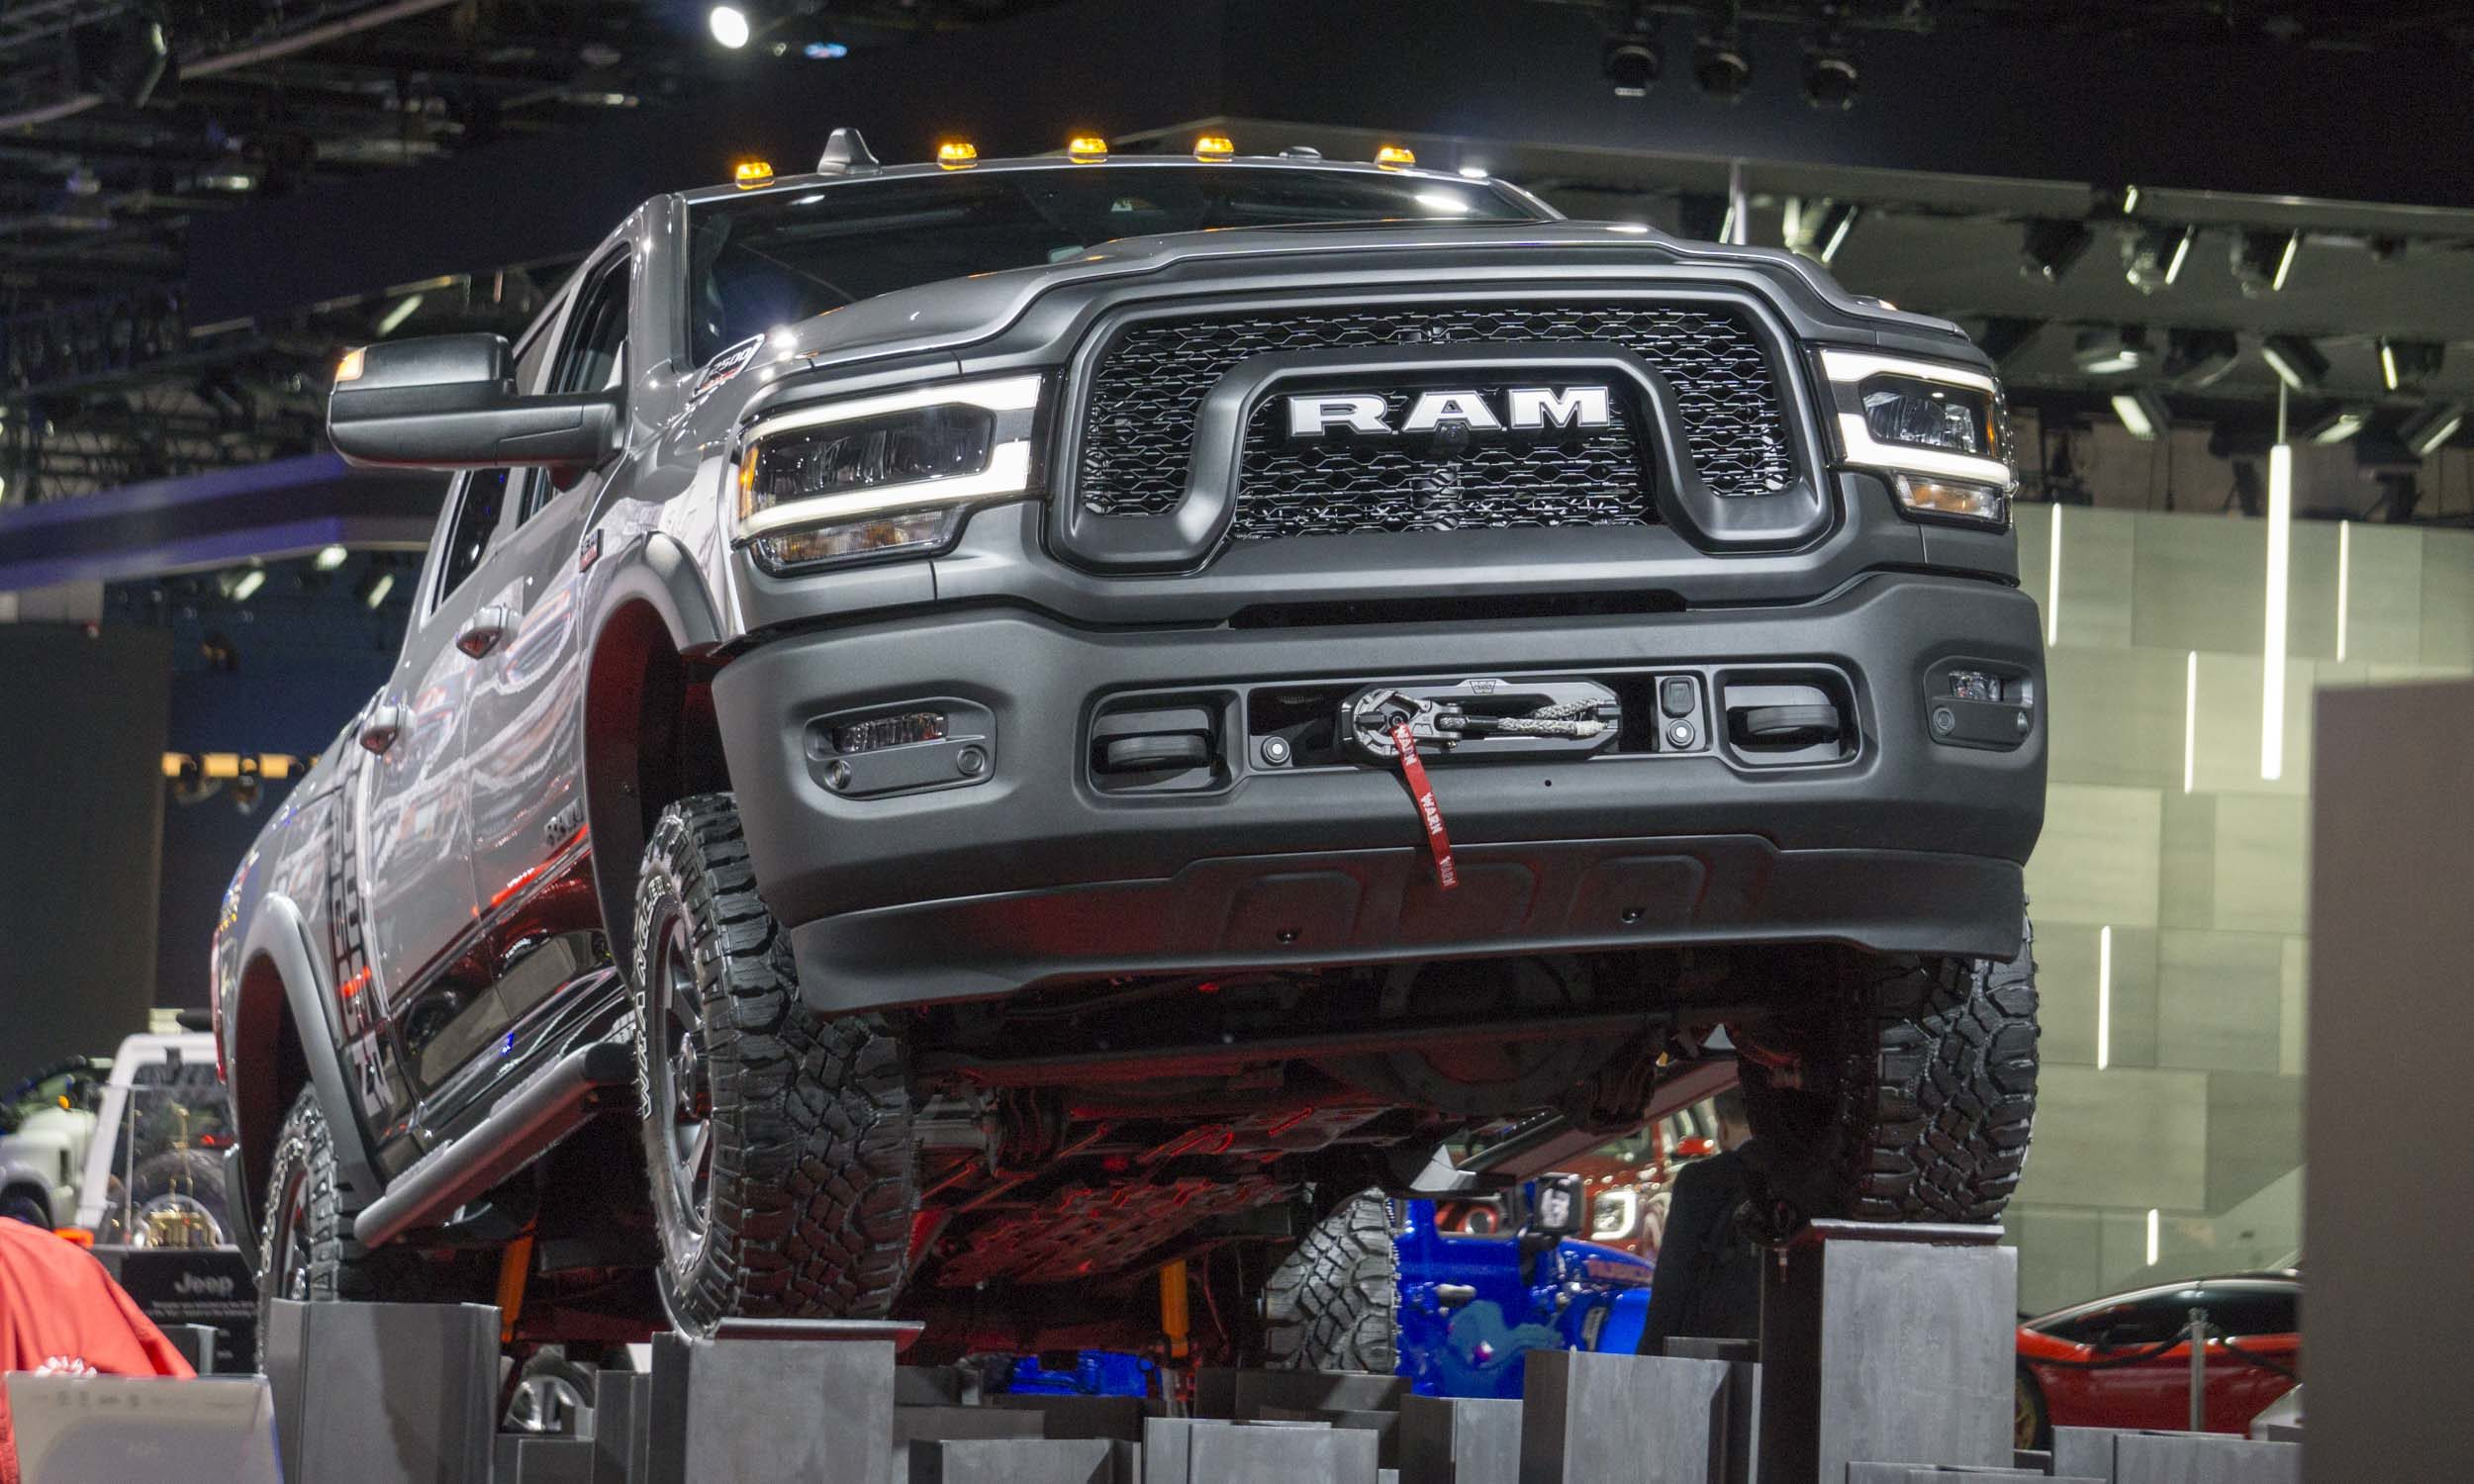 2019-Ram-Power-Wagon8.jpg